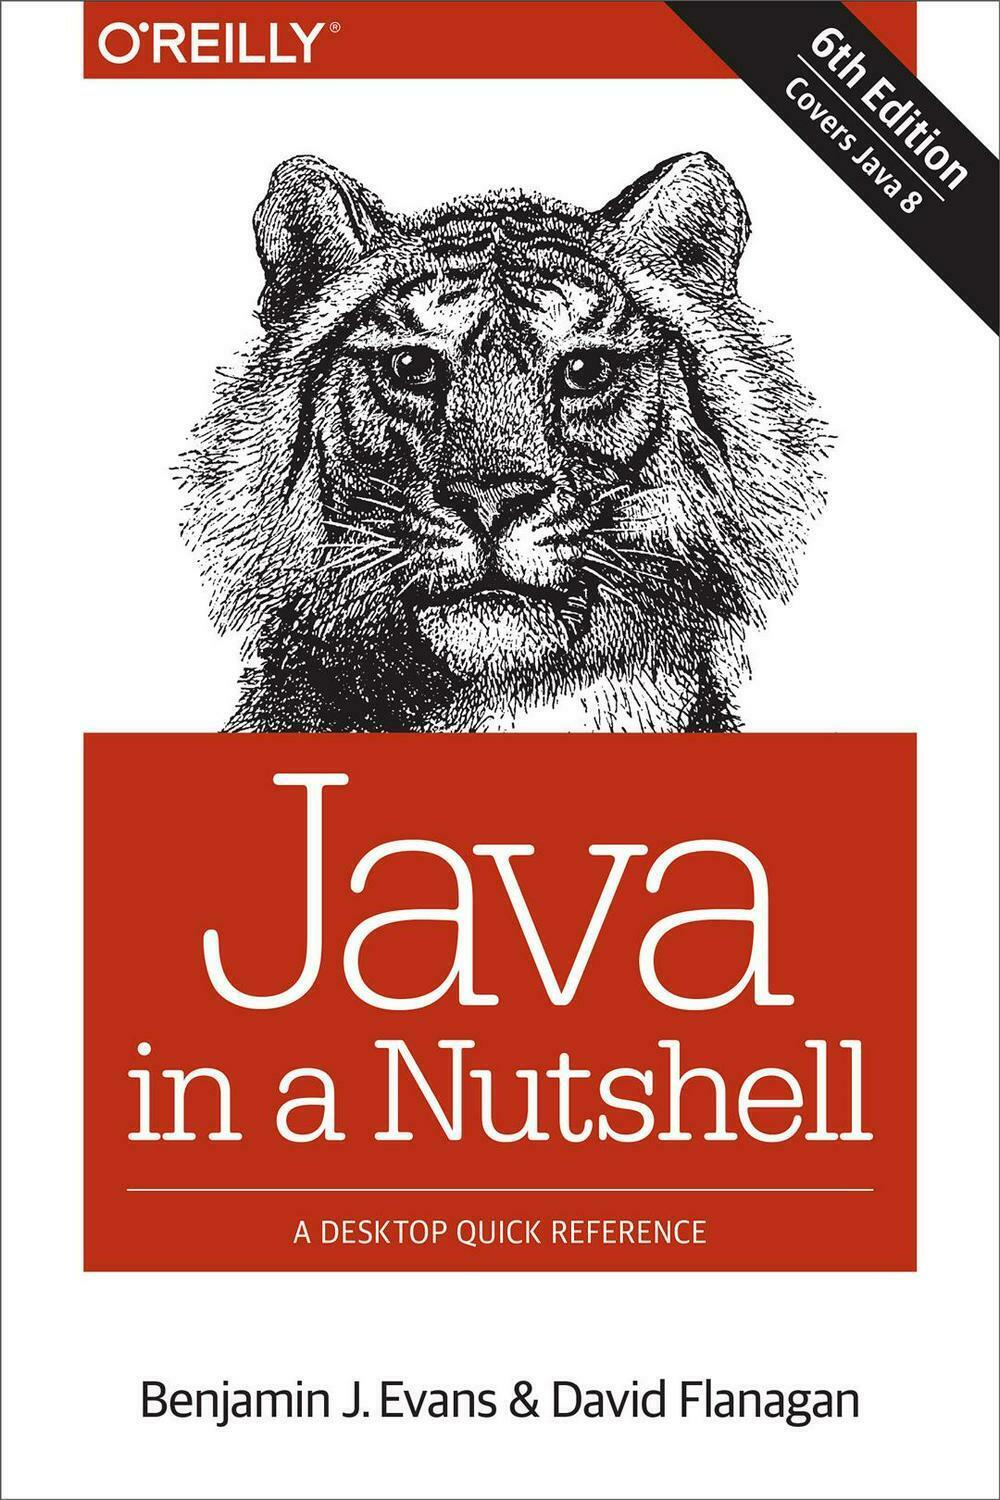 Java in a Nutshell by Benjamin J. Evans (English) Paperback Book Free Shipping! |